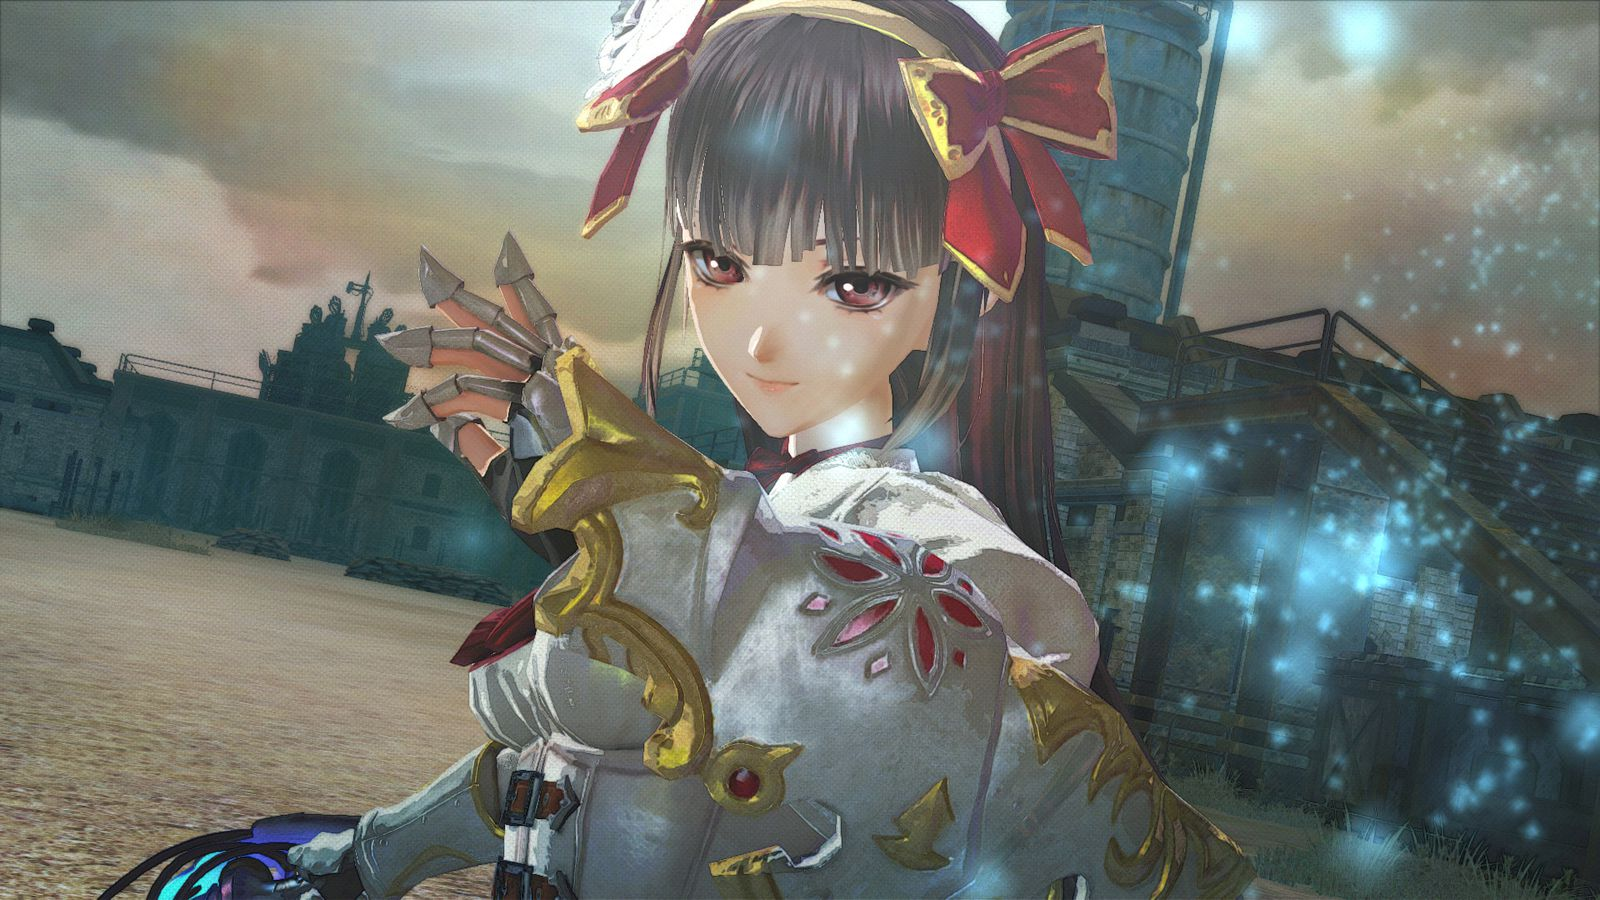 The next Valkyria game comes to PlayStation and Xbox in June